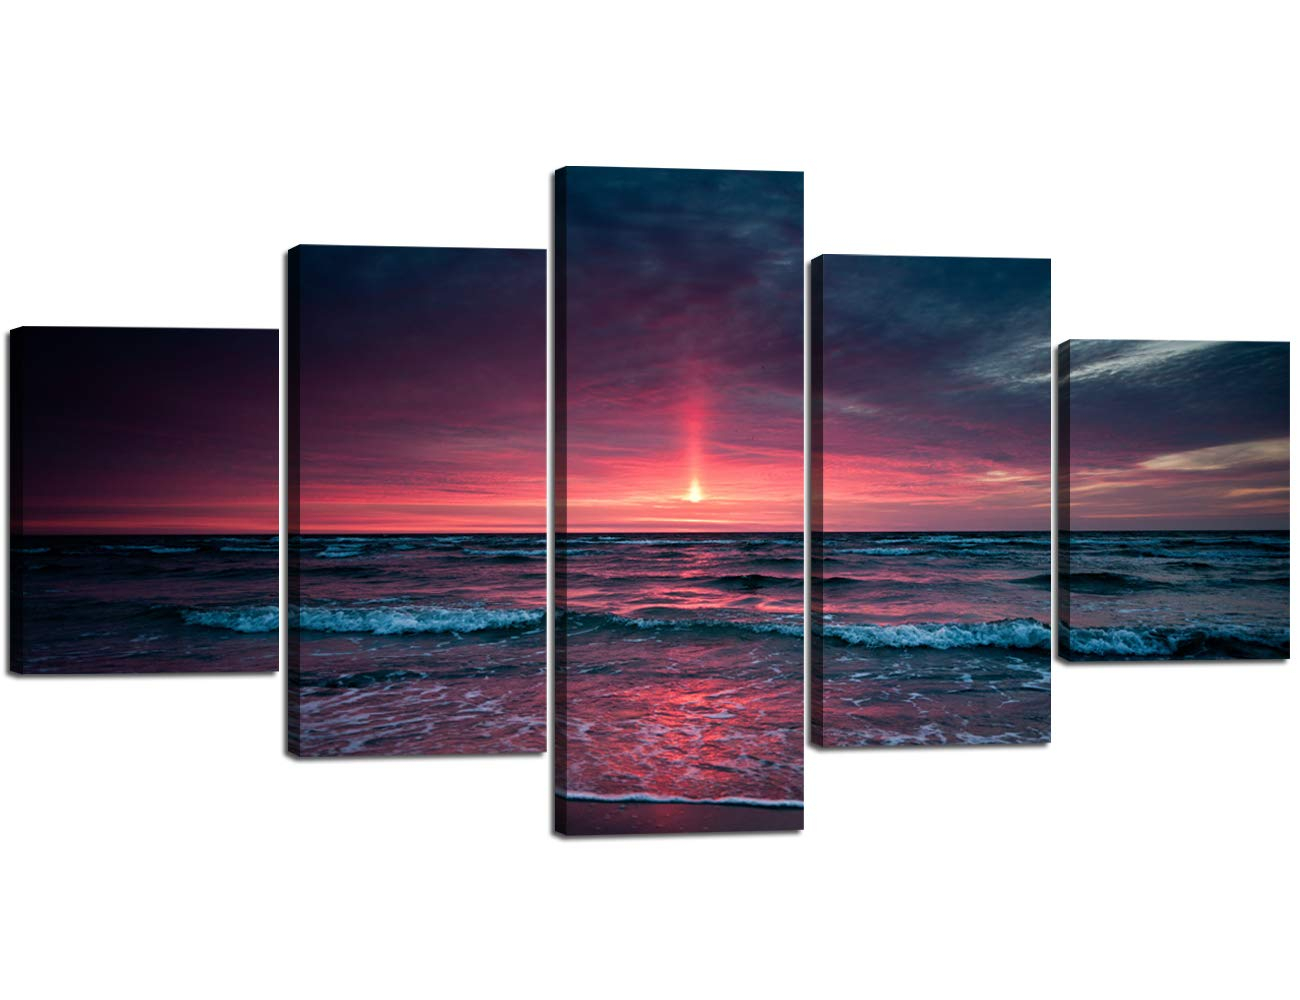 5 Panel Canvas Wall Art For Living Room Red Aurora Appears In The Ocean  Seaview Sunset Painting Modern Seascape Pictures Home Wall Decor Prints And with regard to Aurora Sun Wall Decor (Image 3 of 30)